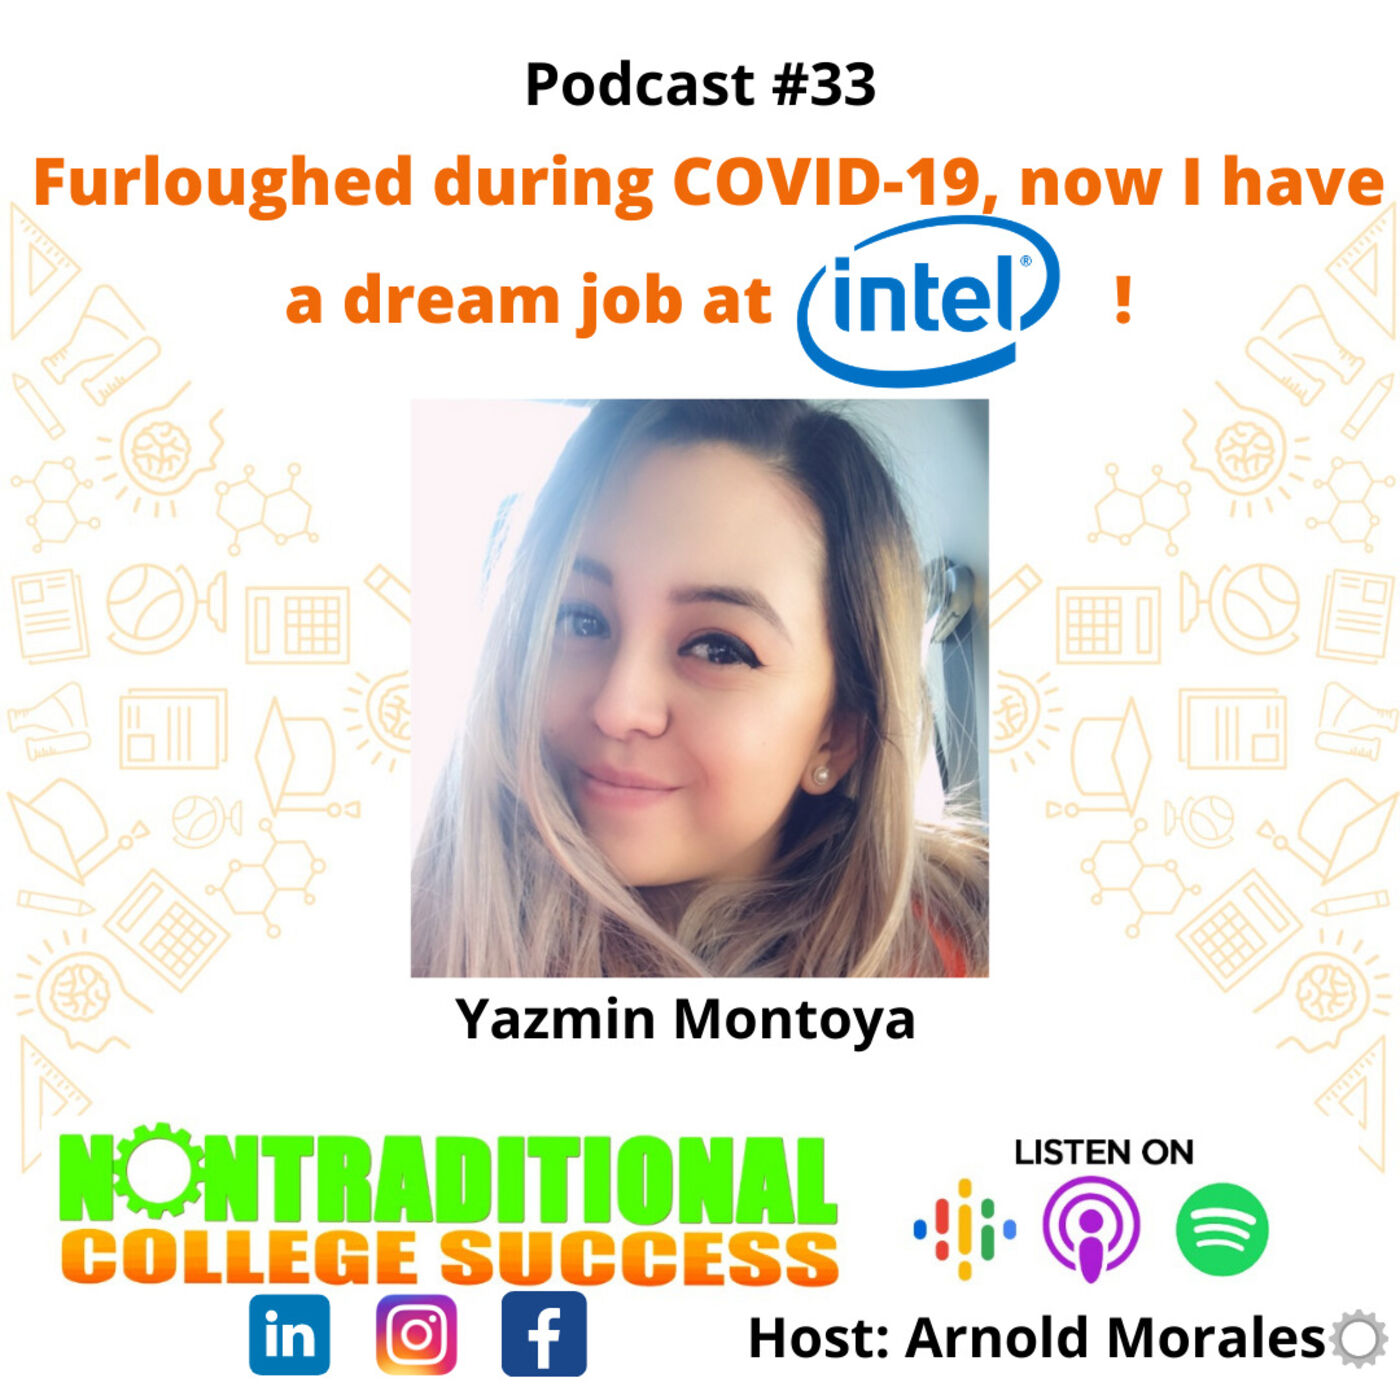 Furloughed during COVID-19,Now I have a dream job at Intel! with Yazmin Montoya Ep.33